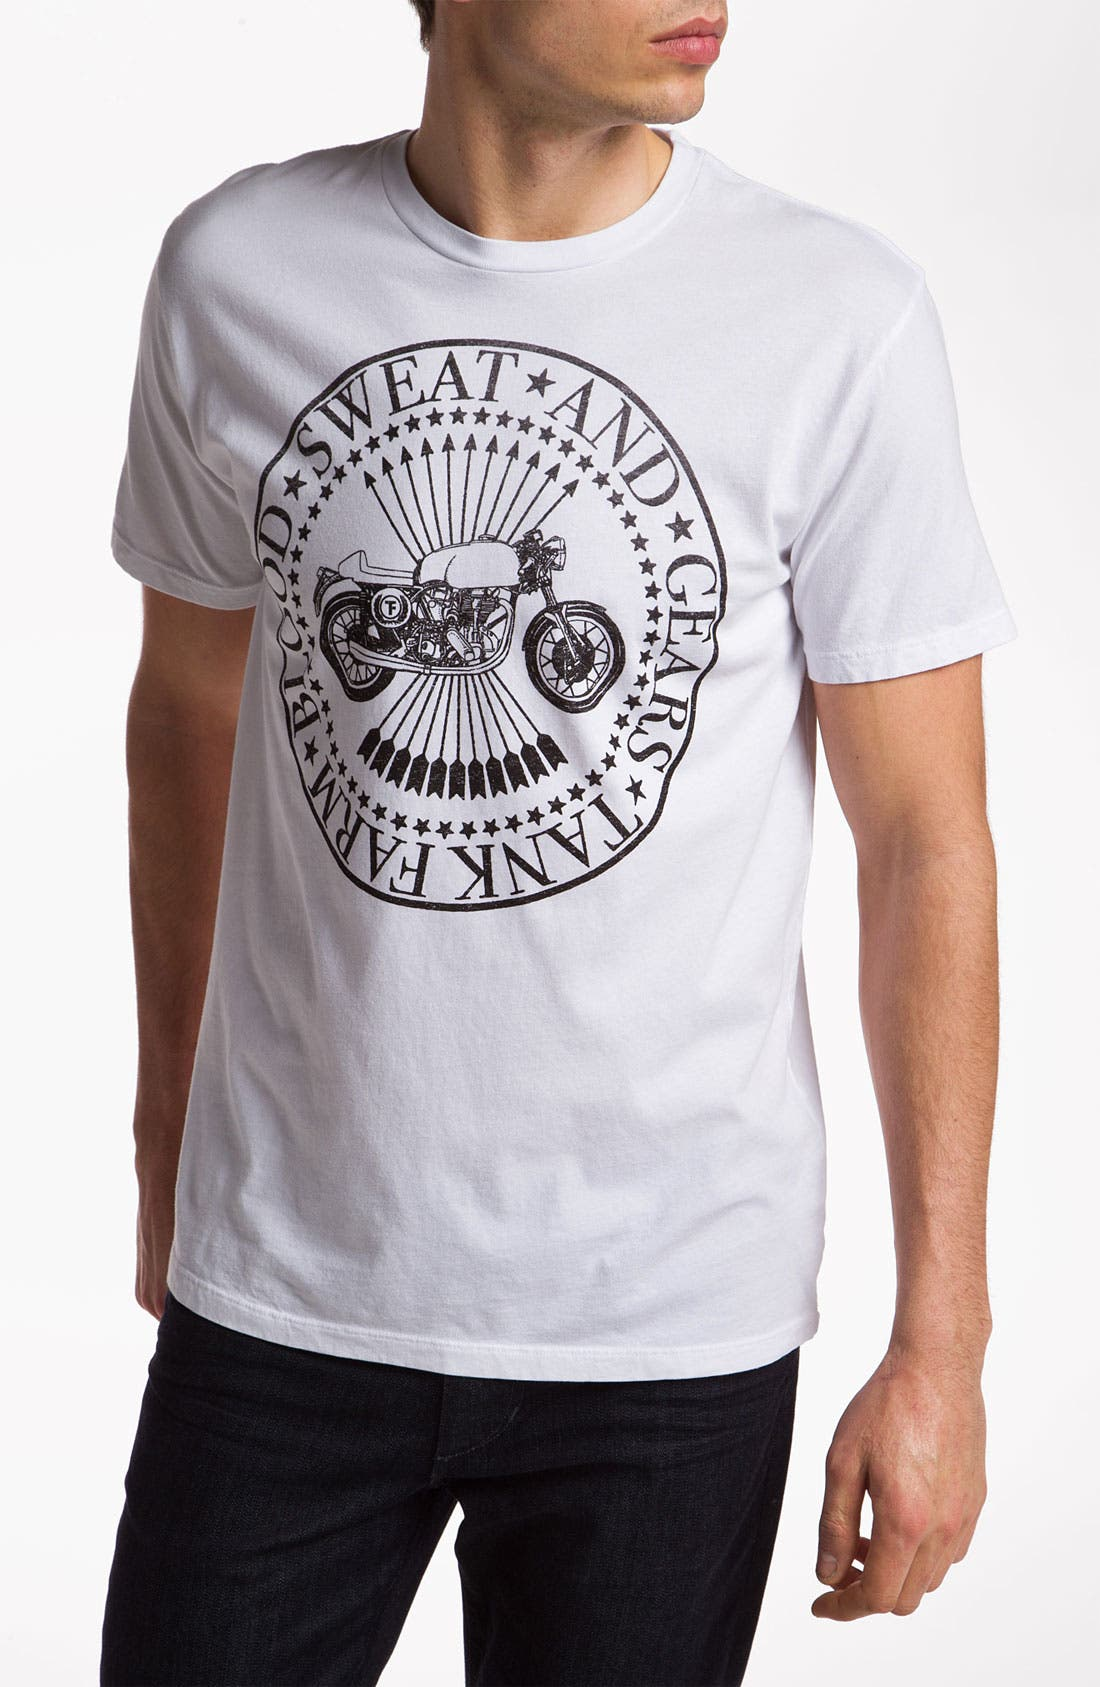 Main Image - Tankfarm 'Motor Stamp' Graphic T-Shirt